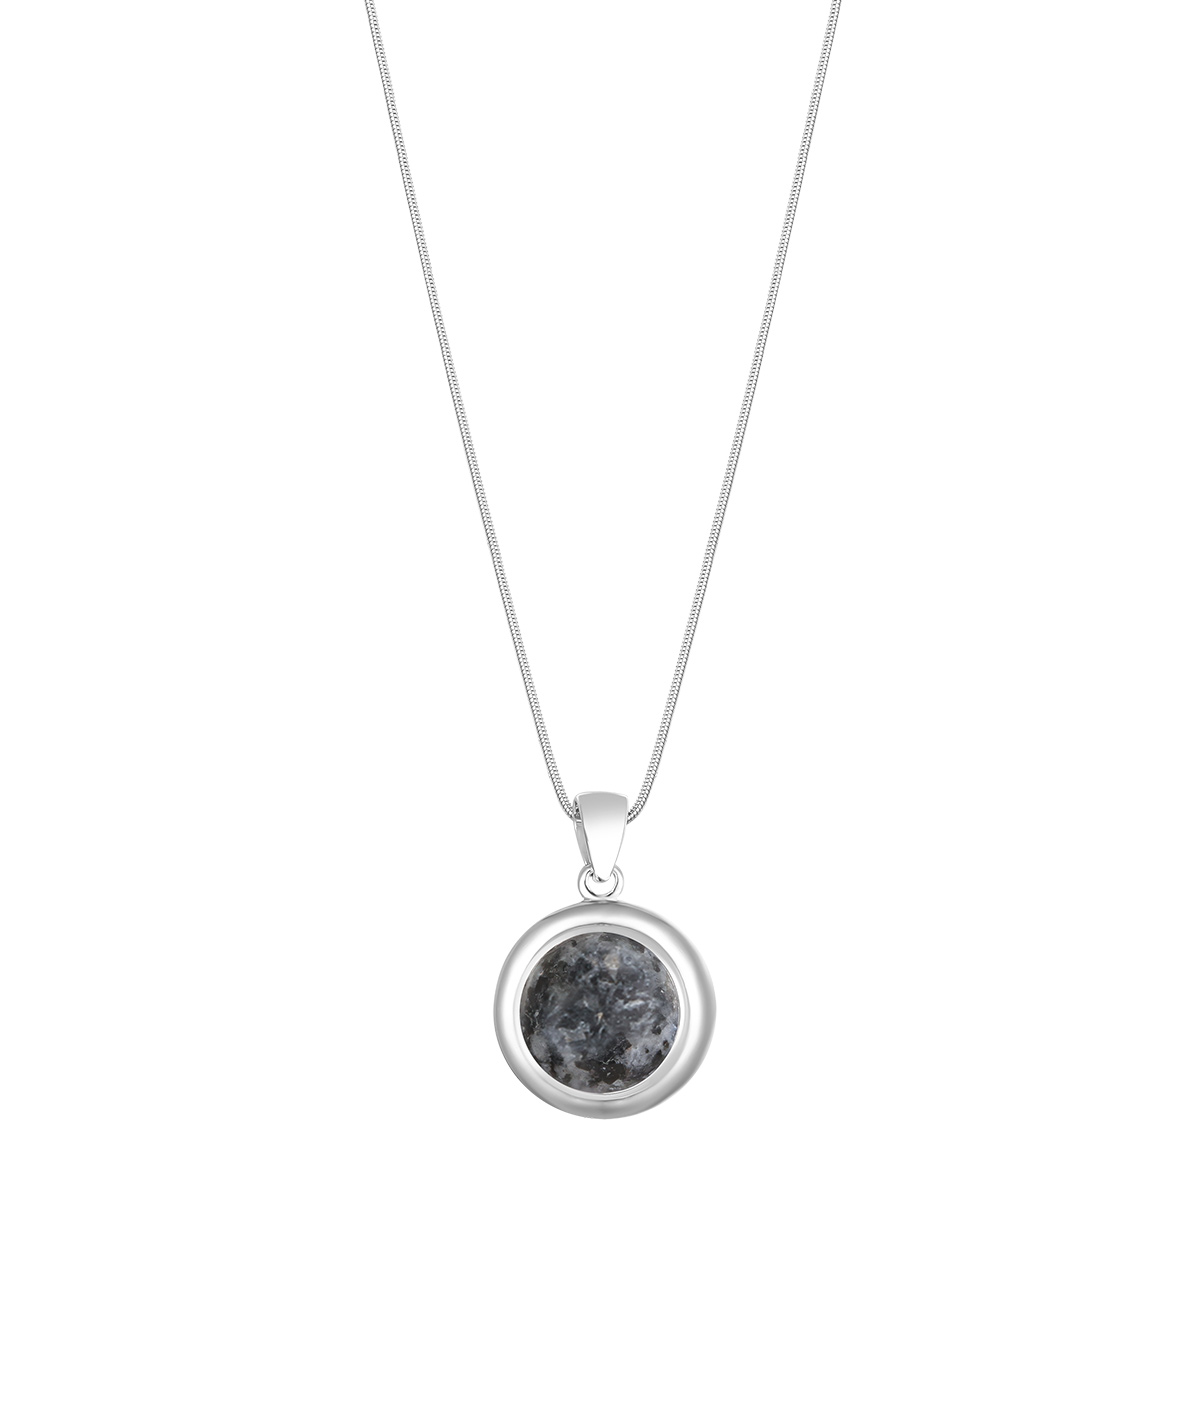 Madeira 8mm Necklace